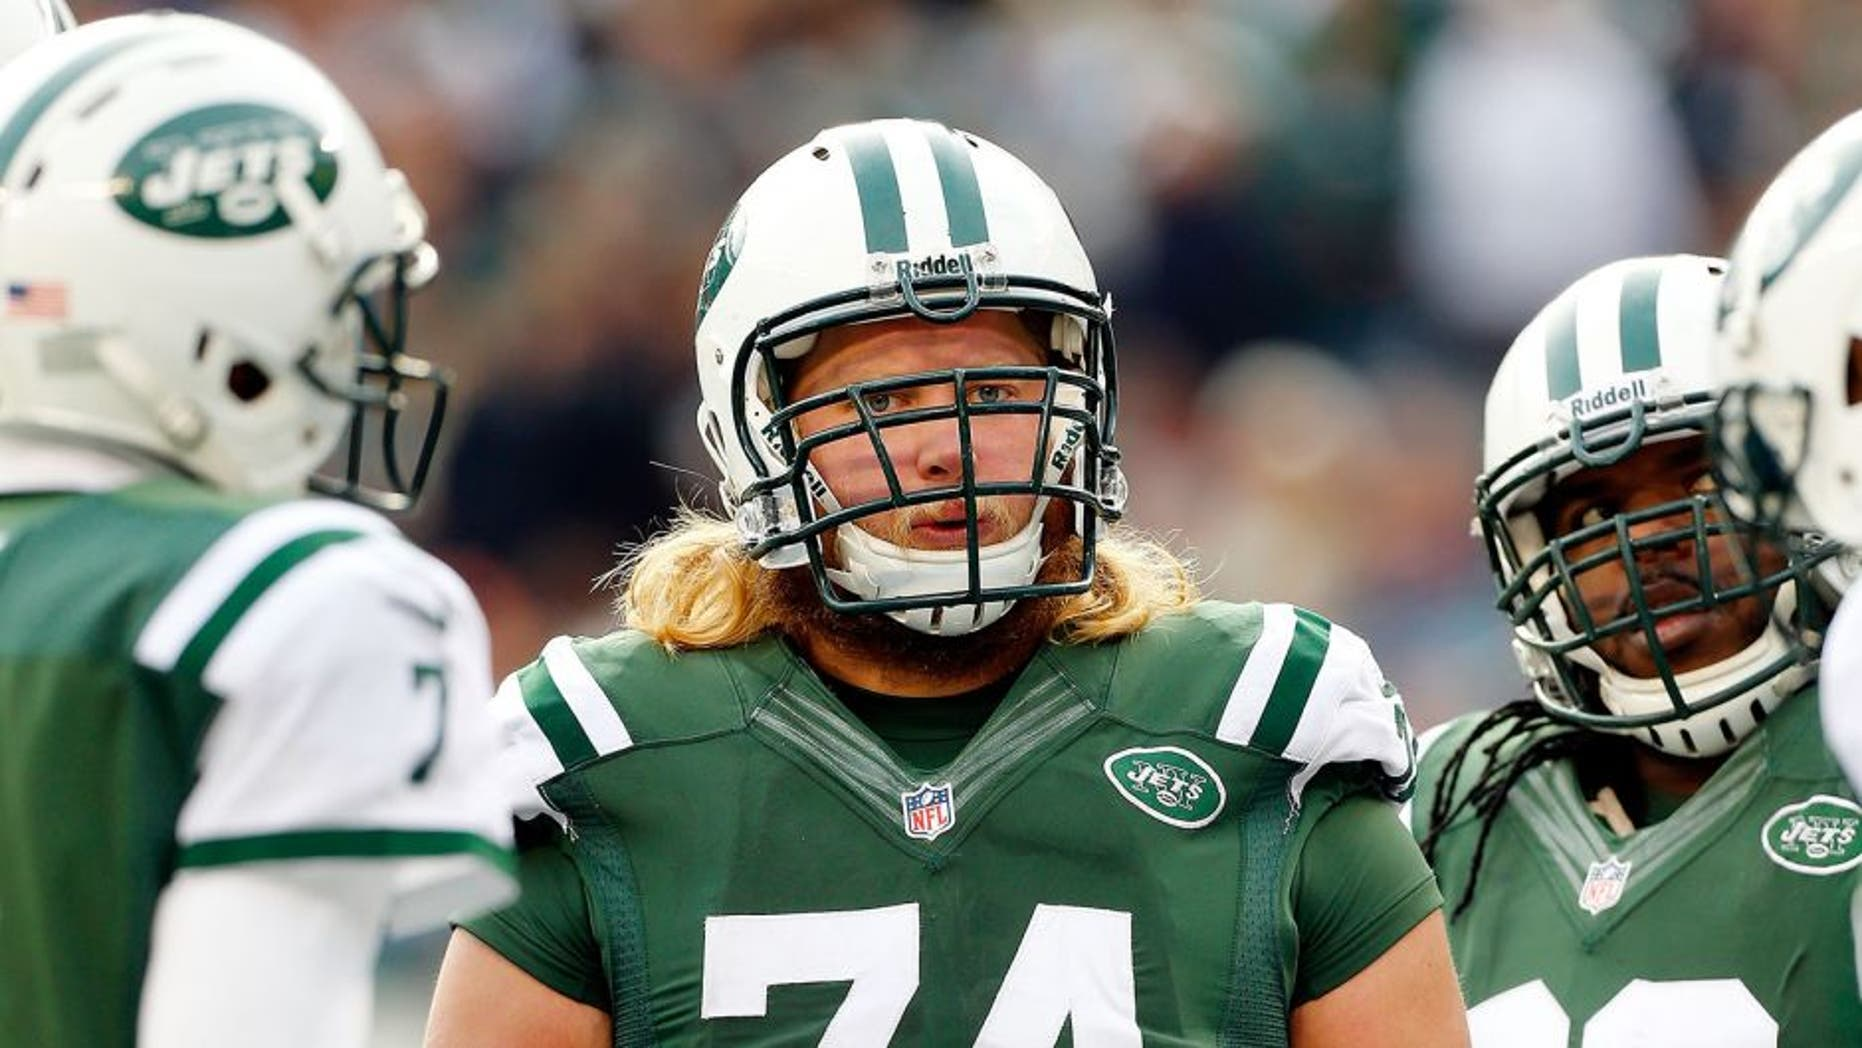 EAST RUTHERFORD, NJ - DECEMBER 01: (NEW YORK DAILIES OUT) Nick Mangold #74 of the New York Jets looks on against the Miami Dolphins on December 1, 2013 at MetLife Stadium in East Rutherford, New Jersey. The Dolphins defeated the Jets 23-3. (Photo by Jim McIsaac/Getty Images) *** Local Caption *** Nick Mangold